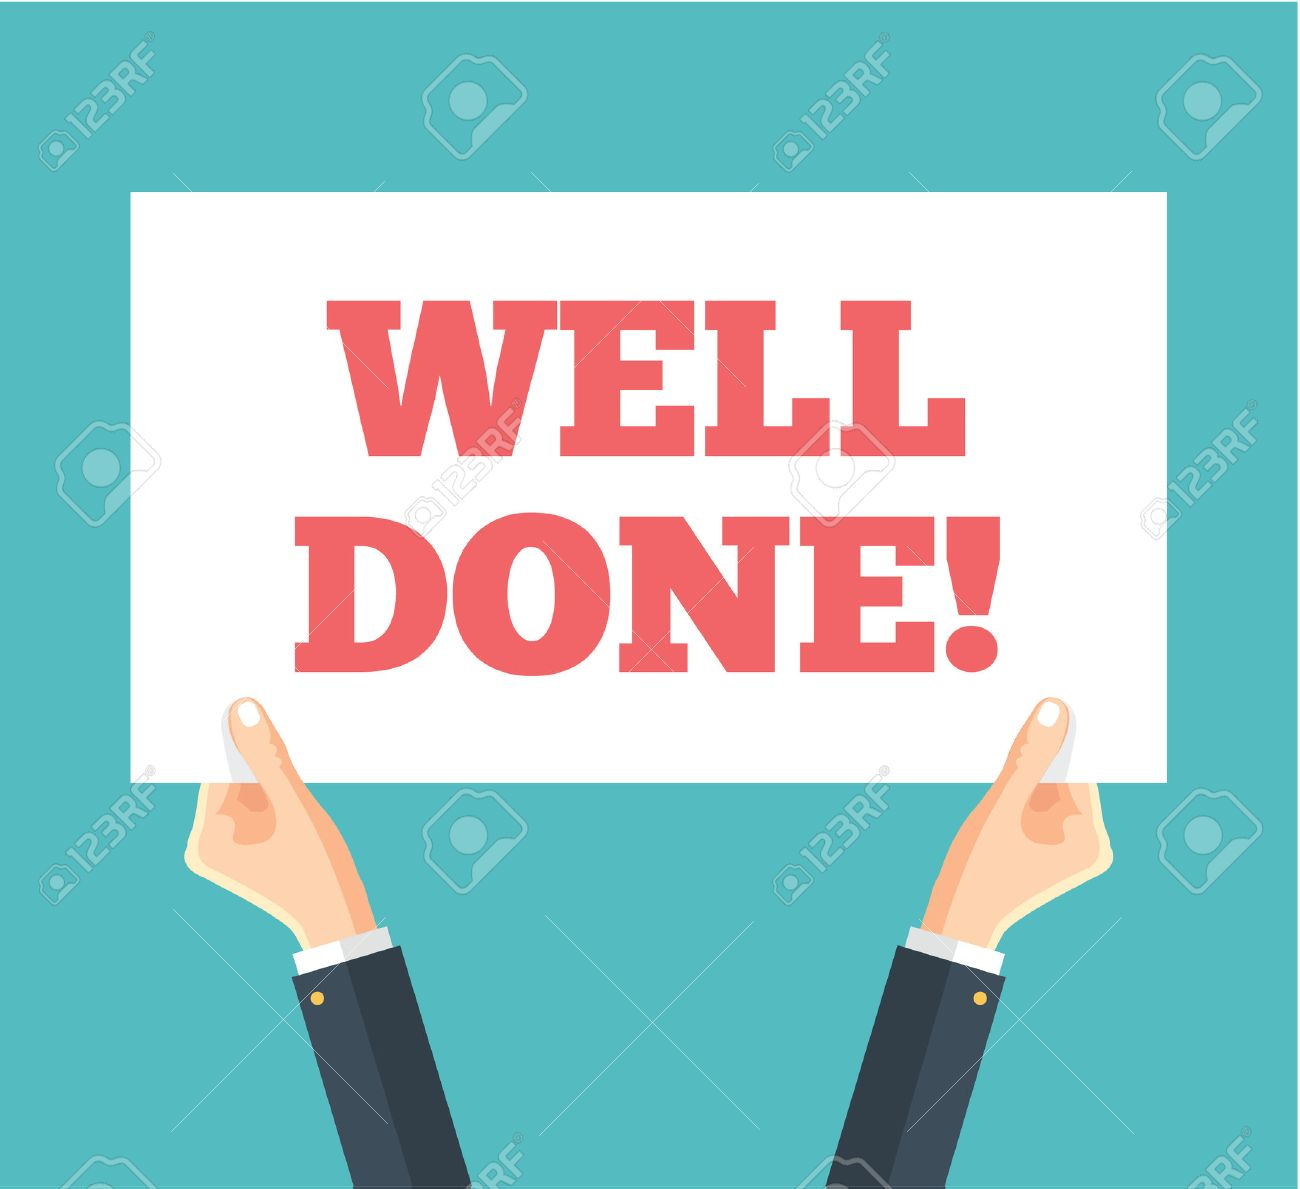 Well Done. Vector flat banner illustration - 52217650